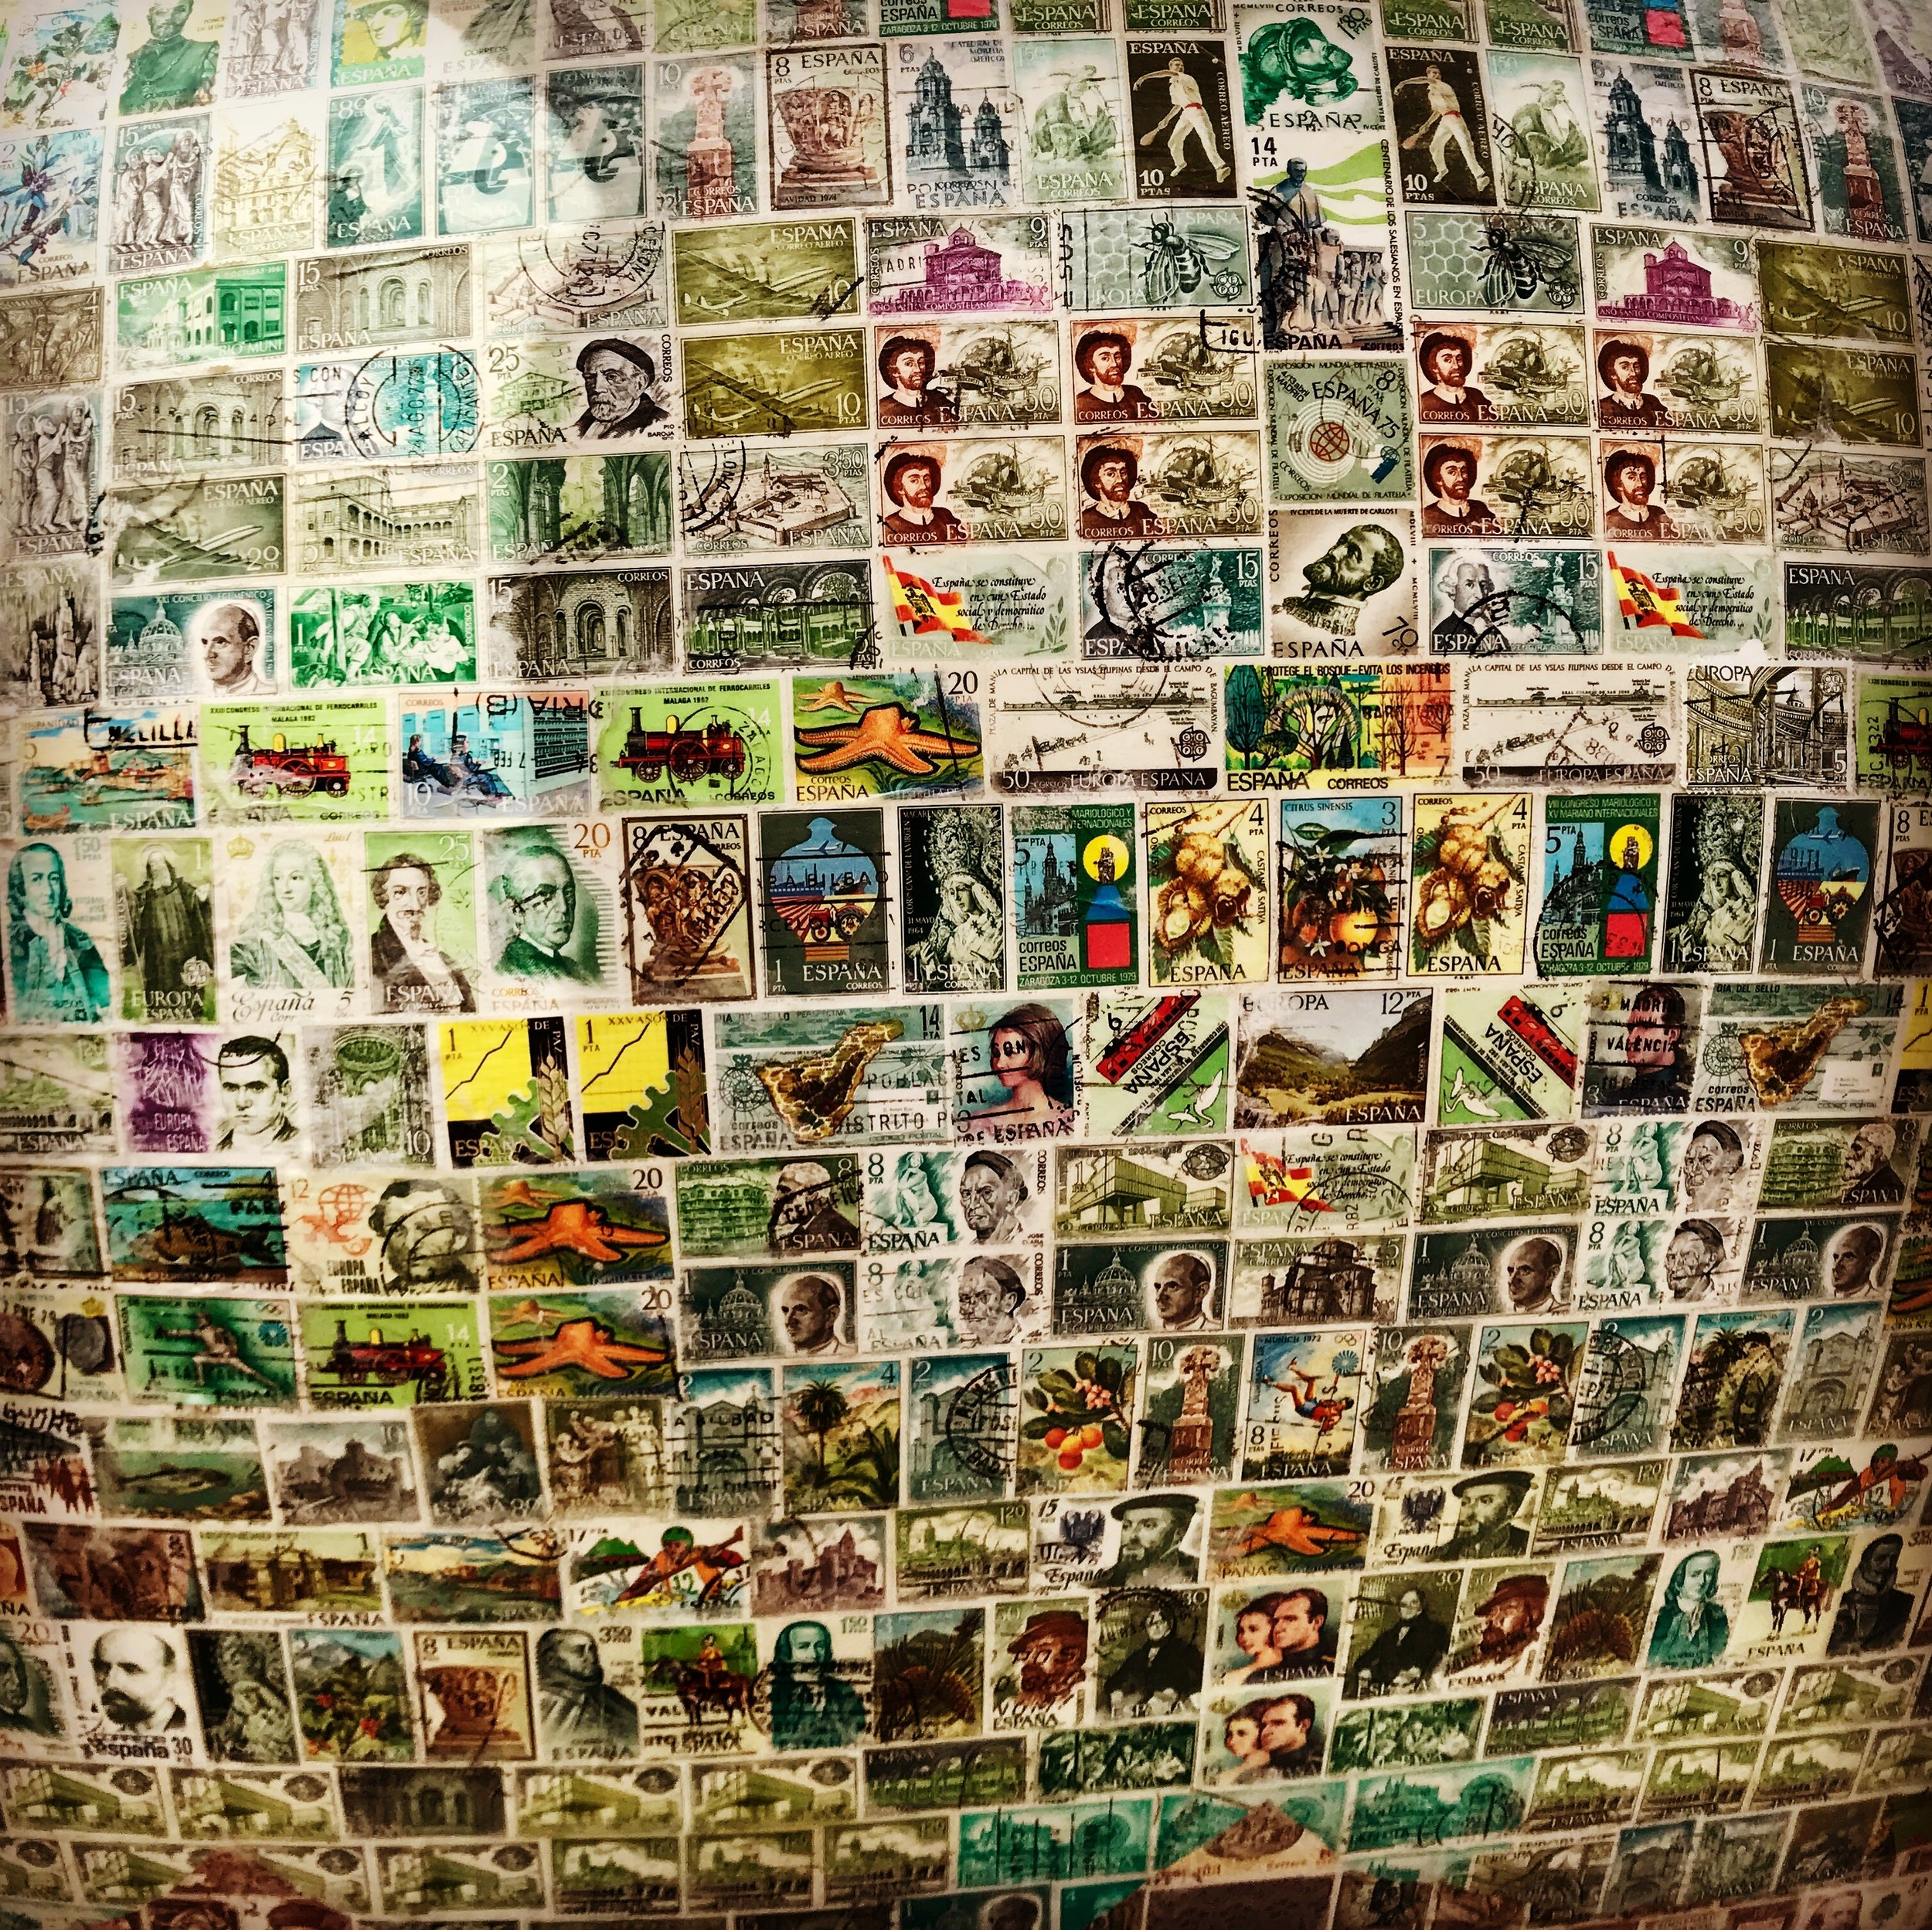 Close-up of one of Madrid's artist-made statues (there are many different ones all around town) - a collage of Spanish stamps.